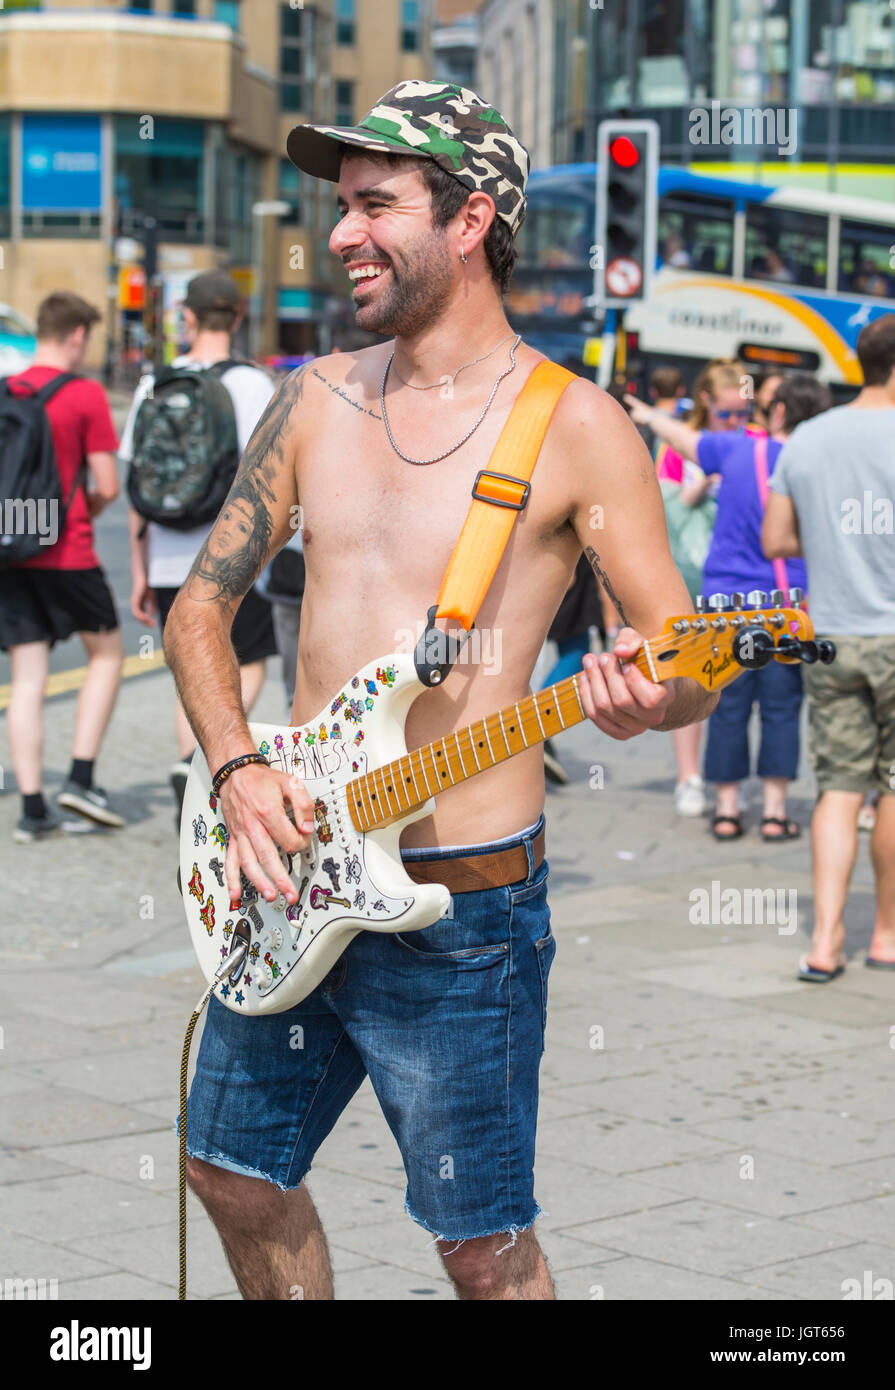 shirtless-busker-playing-guitar-on-a-hot-summers-day-in-a-busy-city-JGT656.jpg